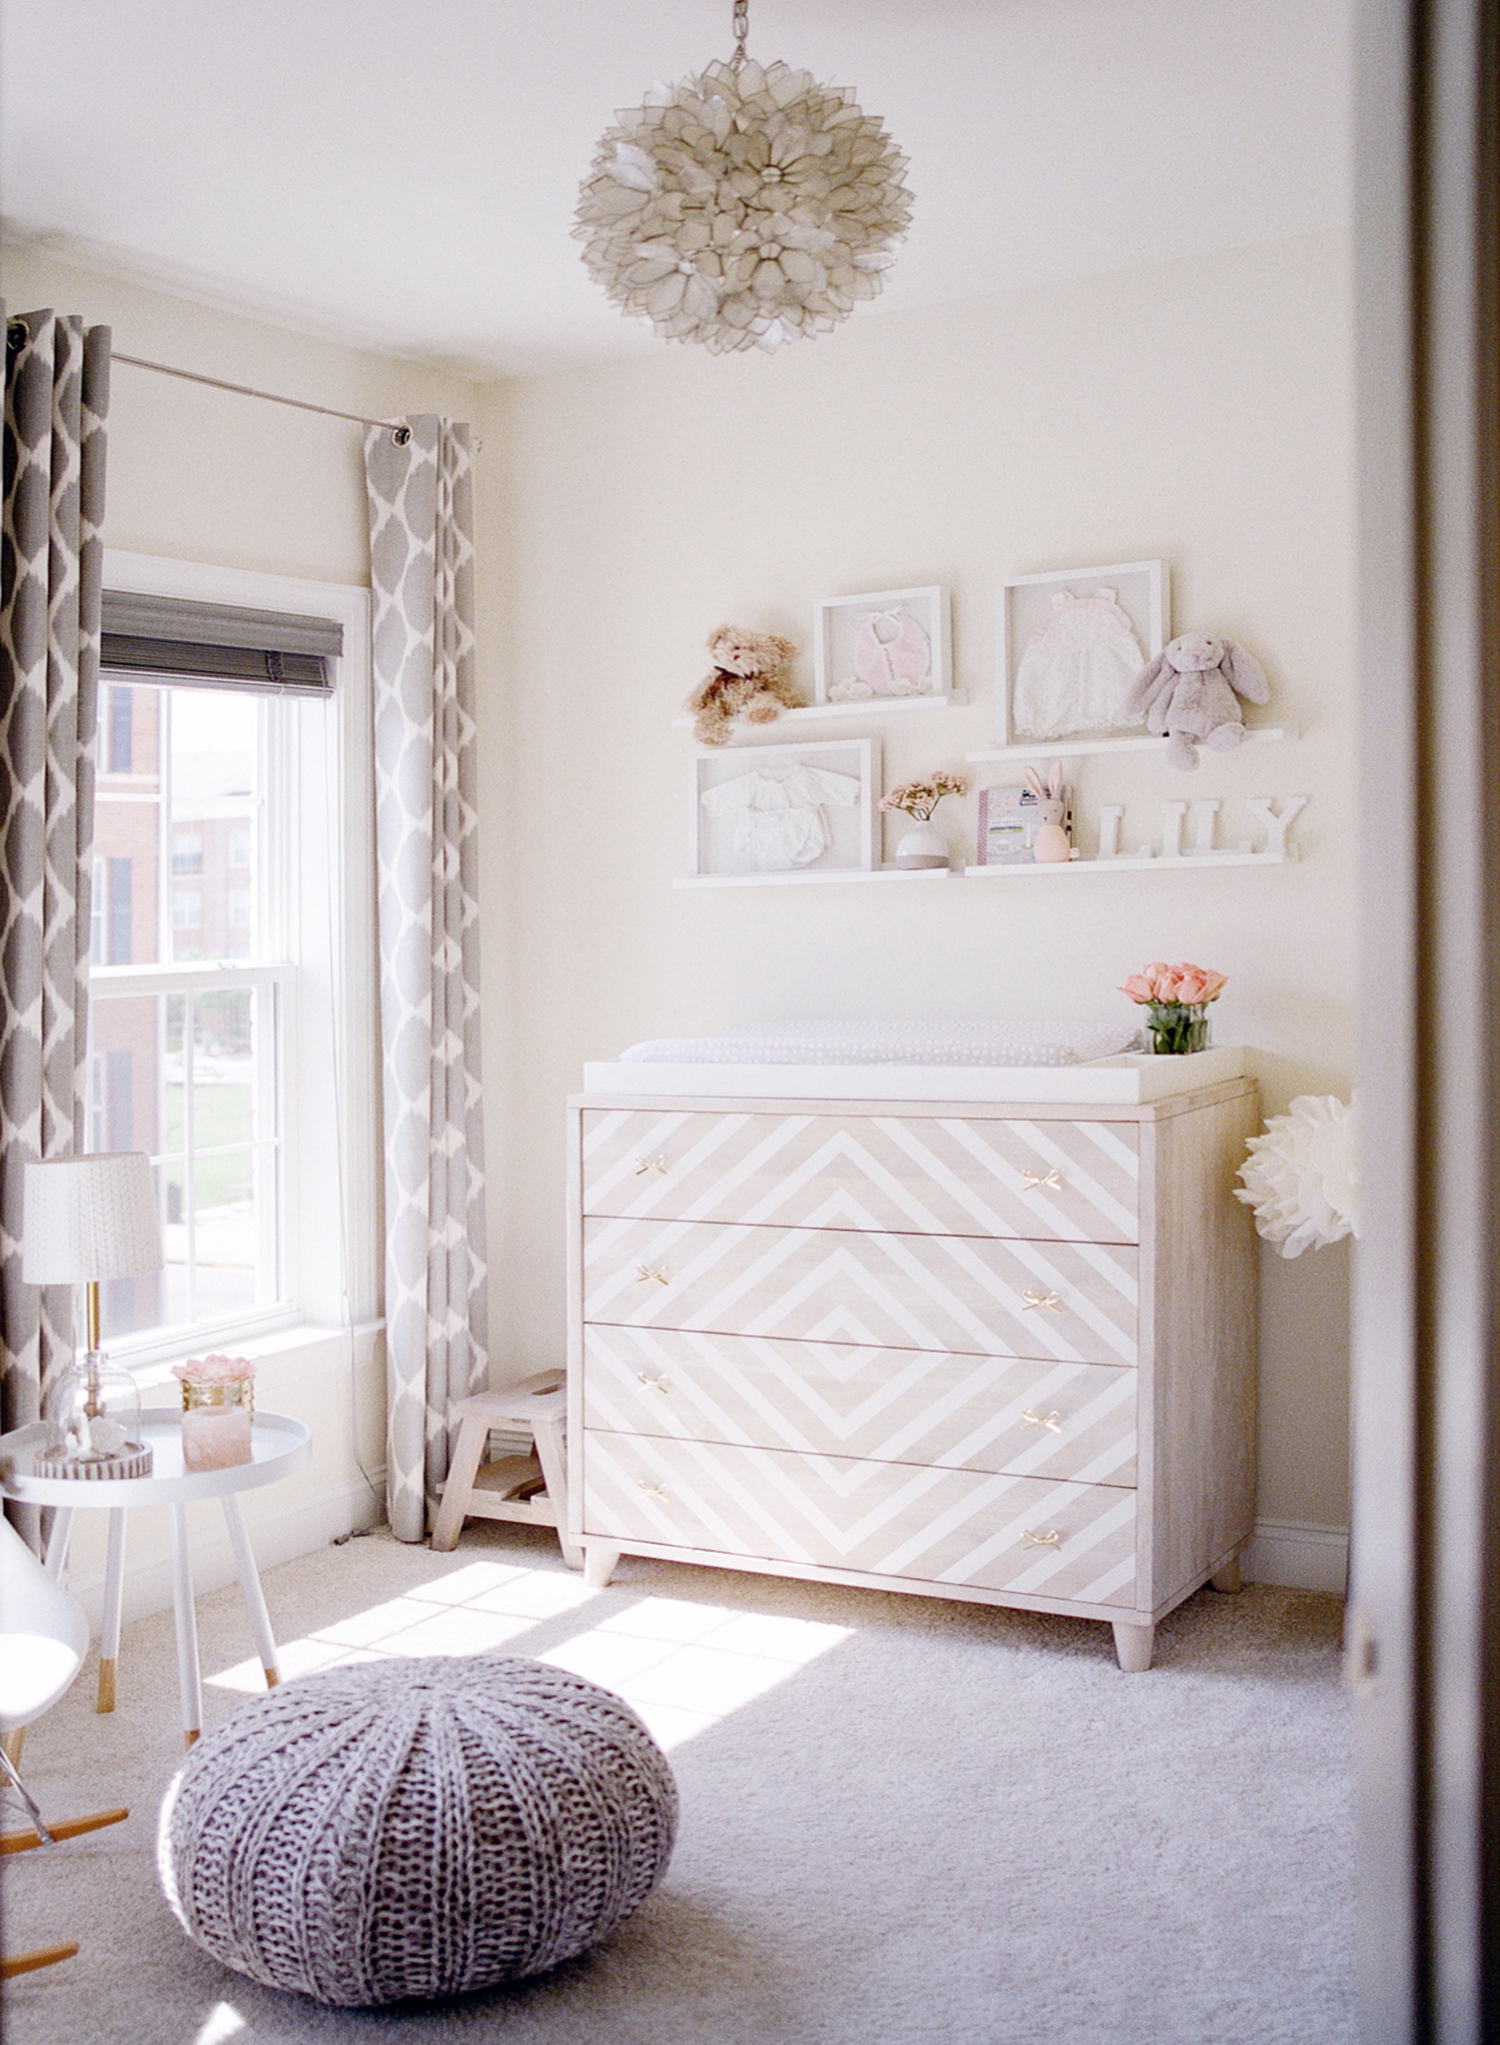 blush and gray nursery decor